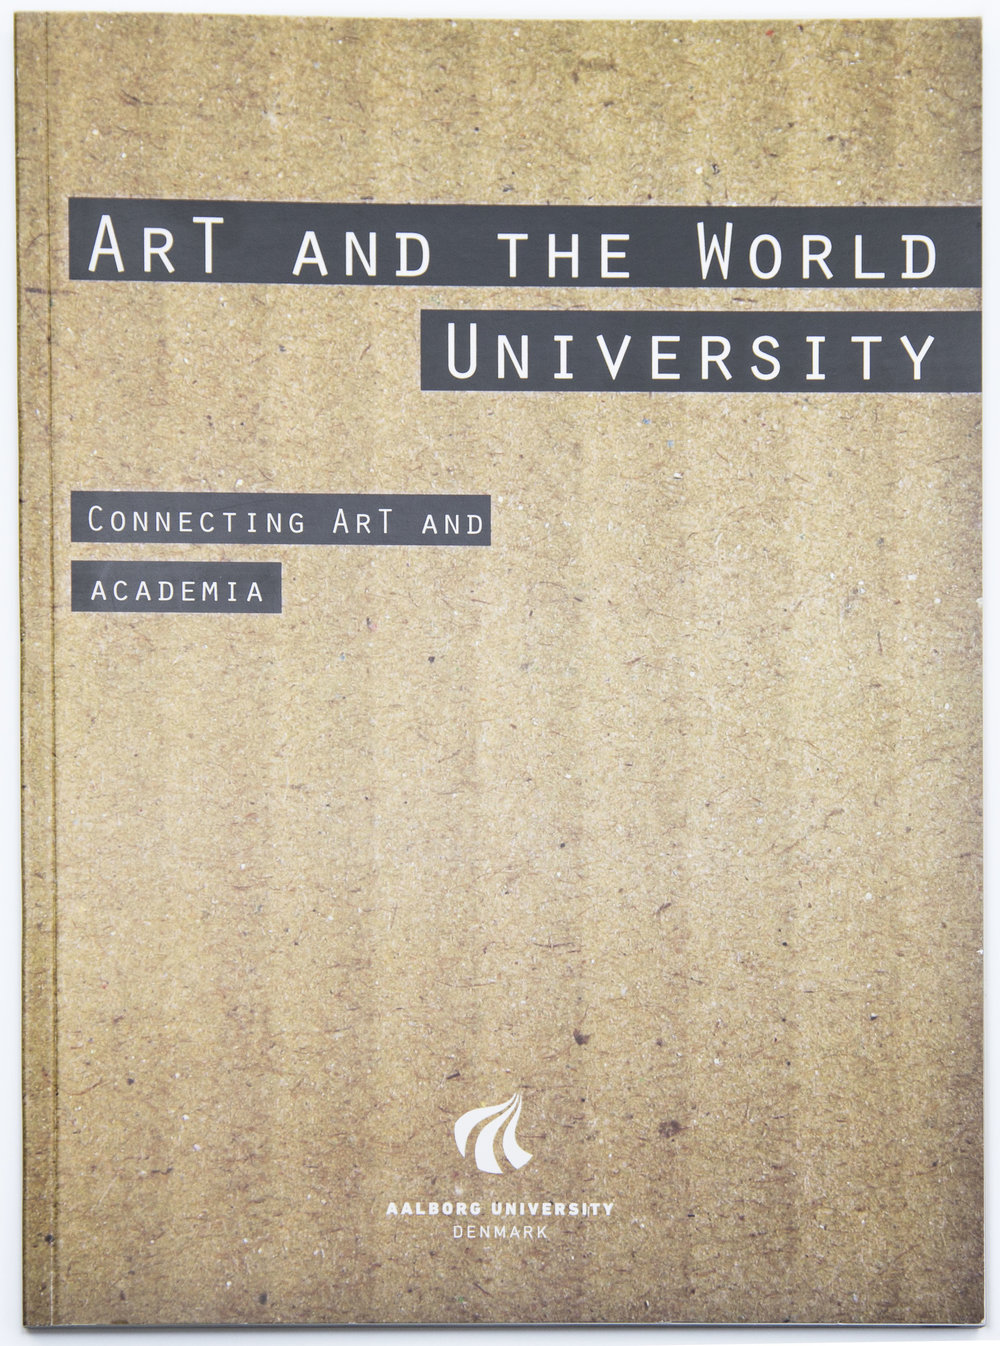 Design / photography for ArT and The World University: Connecting ArT and Academia (2014)